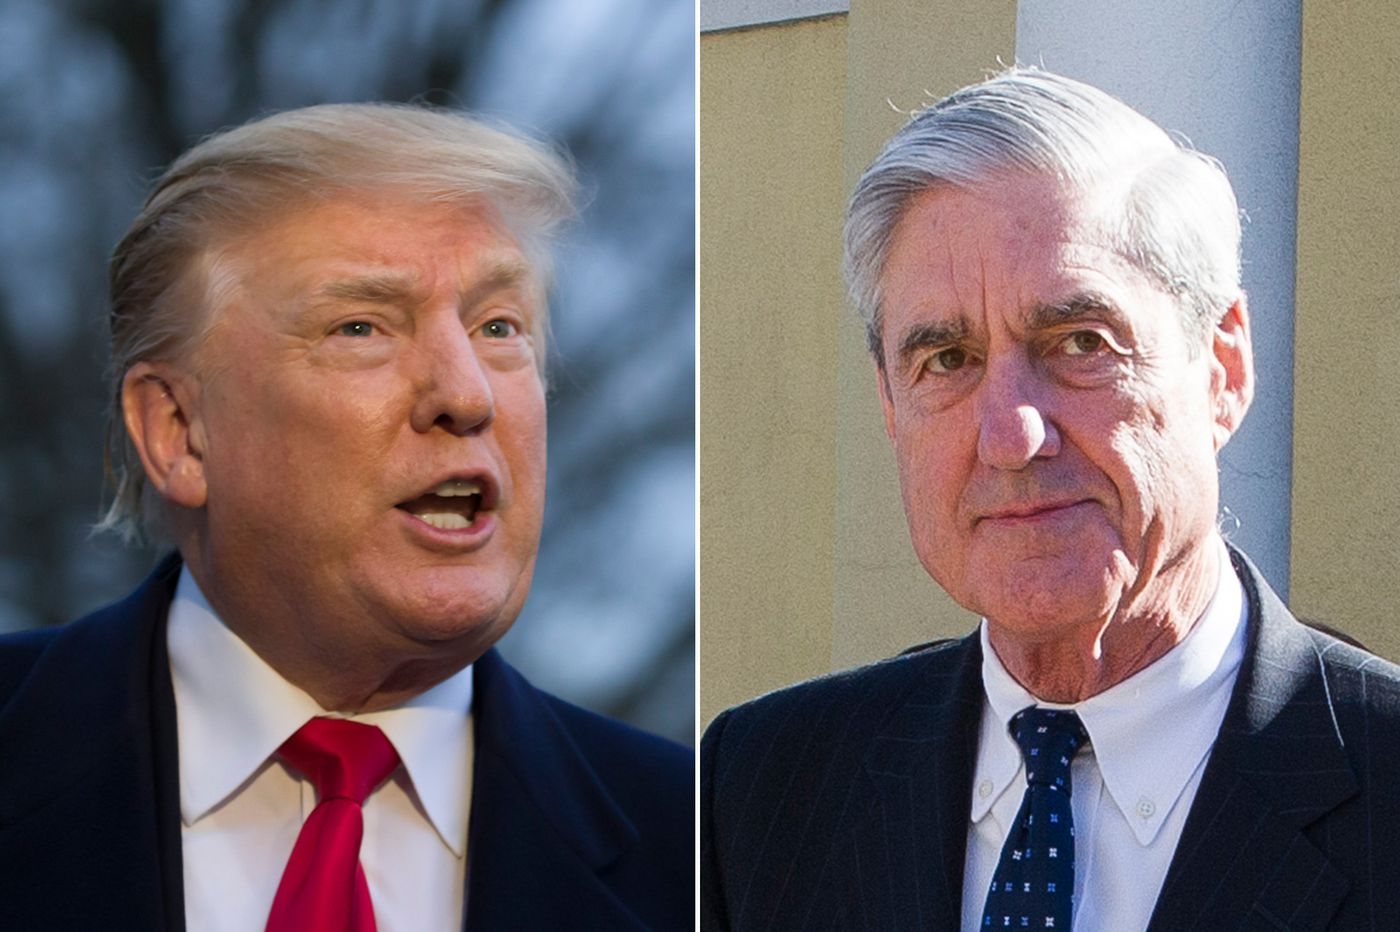 Truth about Mueller report: Trump's behavior provoked it and still helps Russia   Trudy Rubin